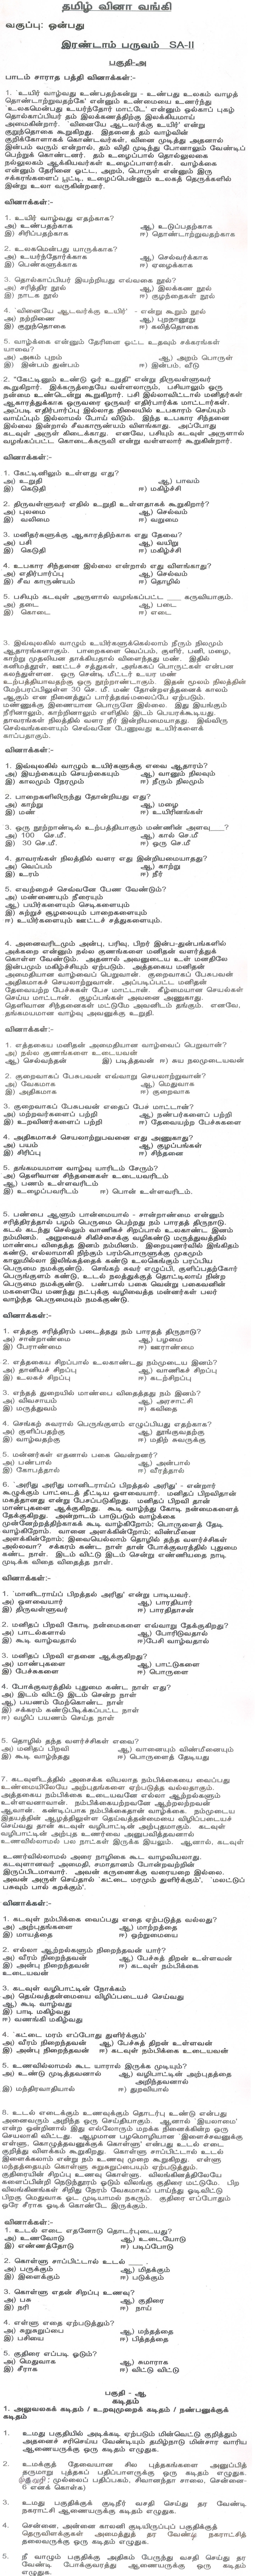 CBSE Class 9 Question Bank - Tamil